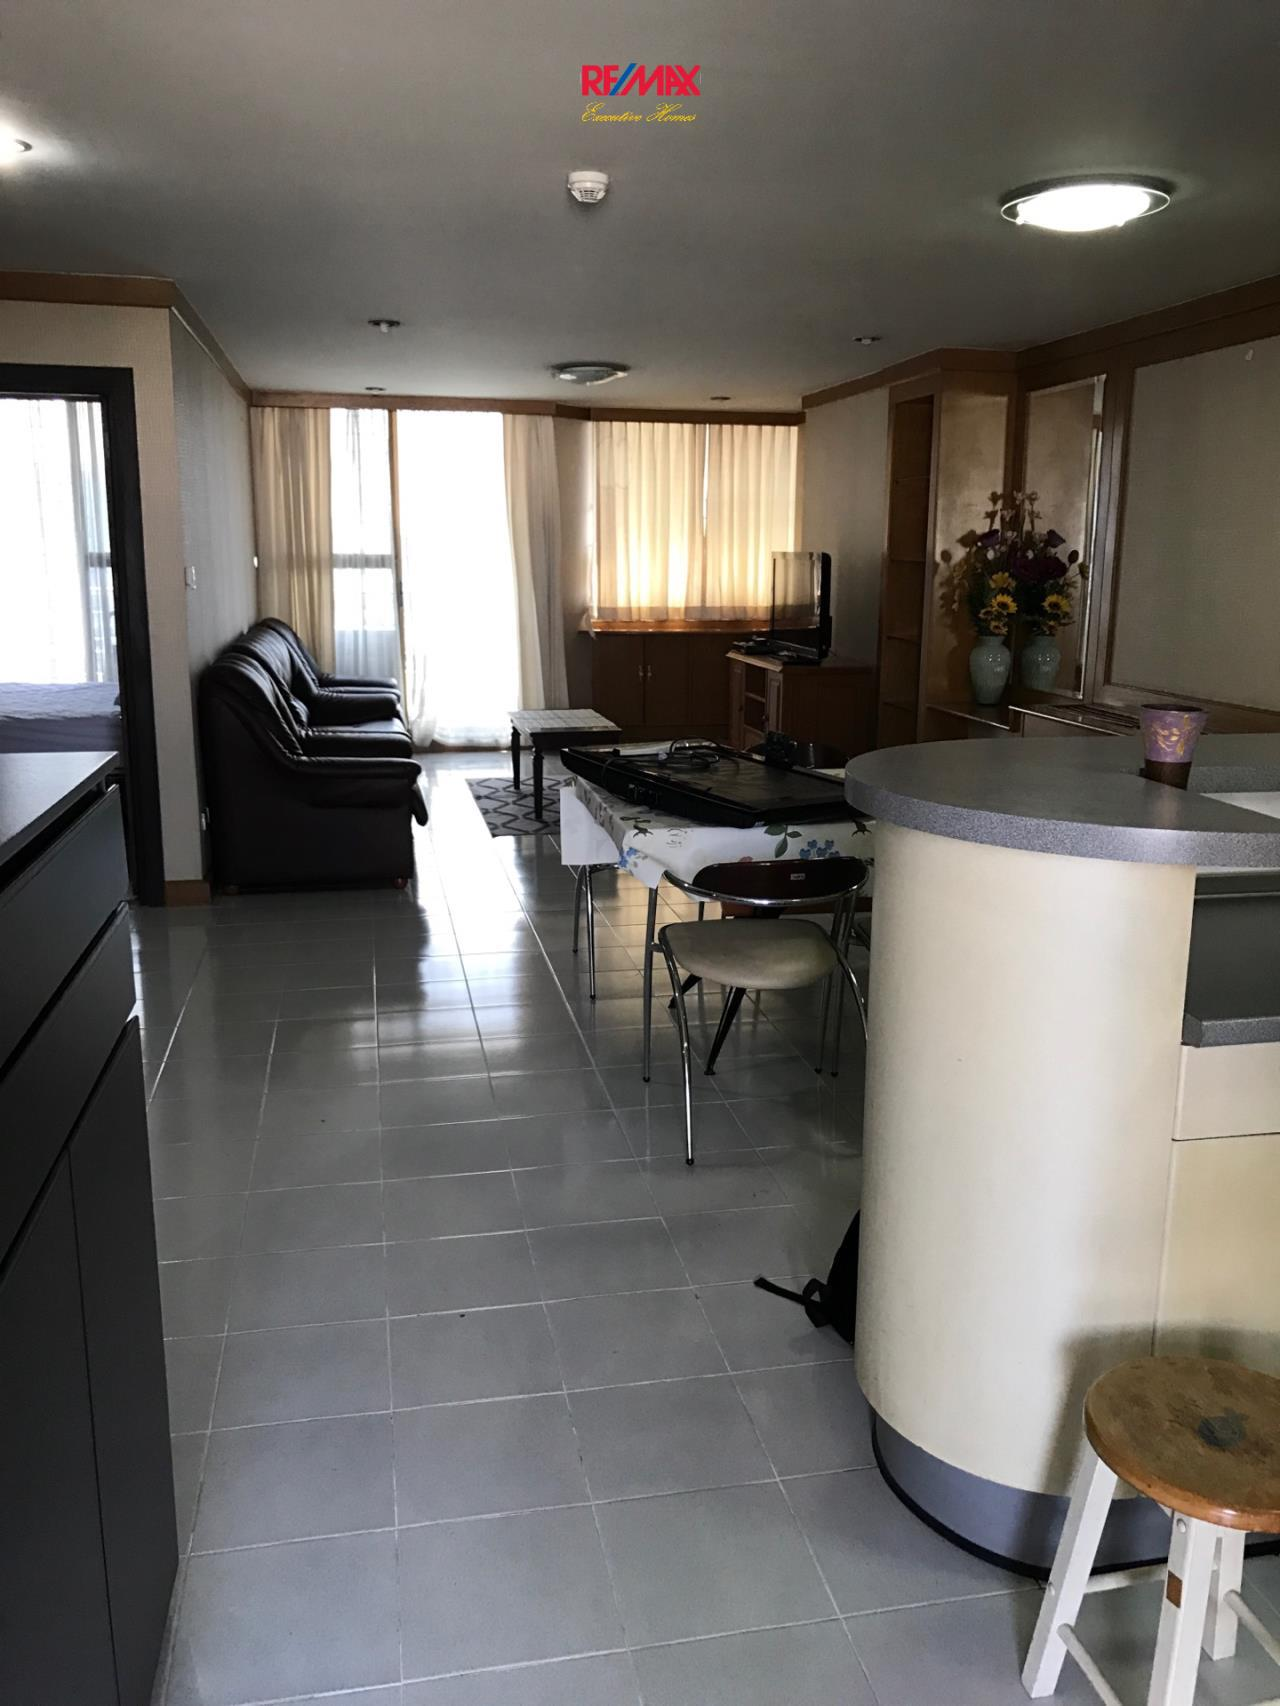 RE/MAX Executive Homes Agency's Spacious 2 Bedroom for Rent Supalai Place 39 2